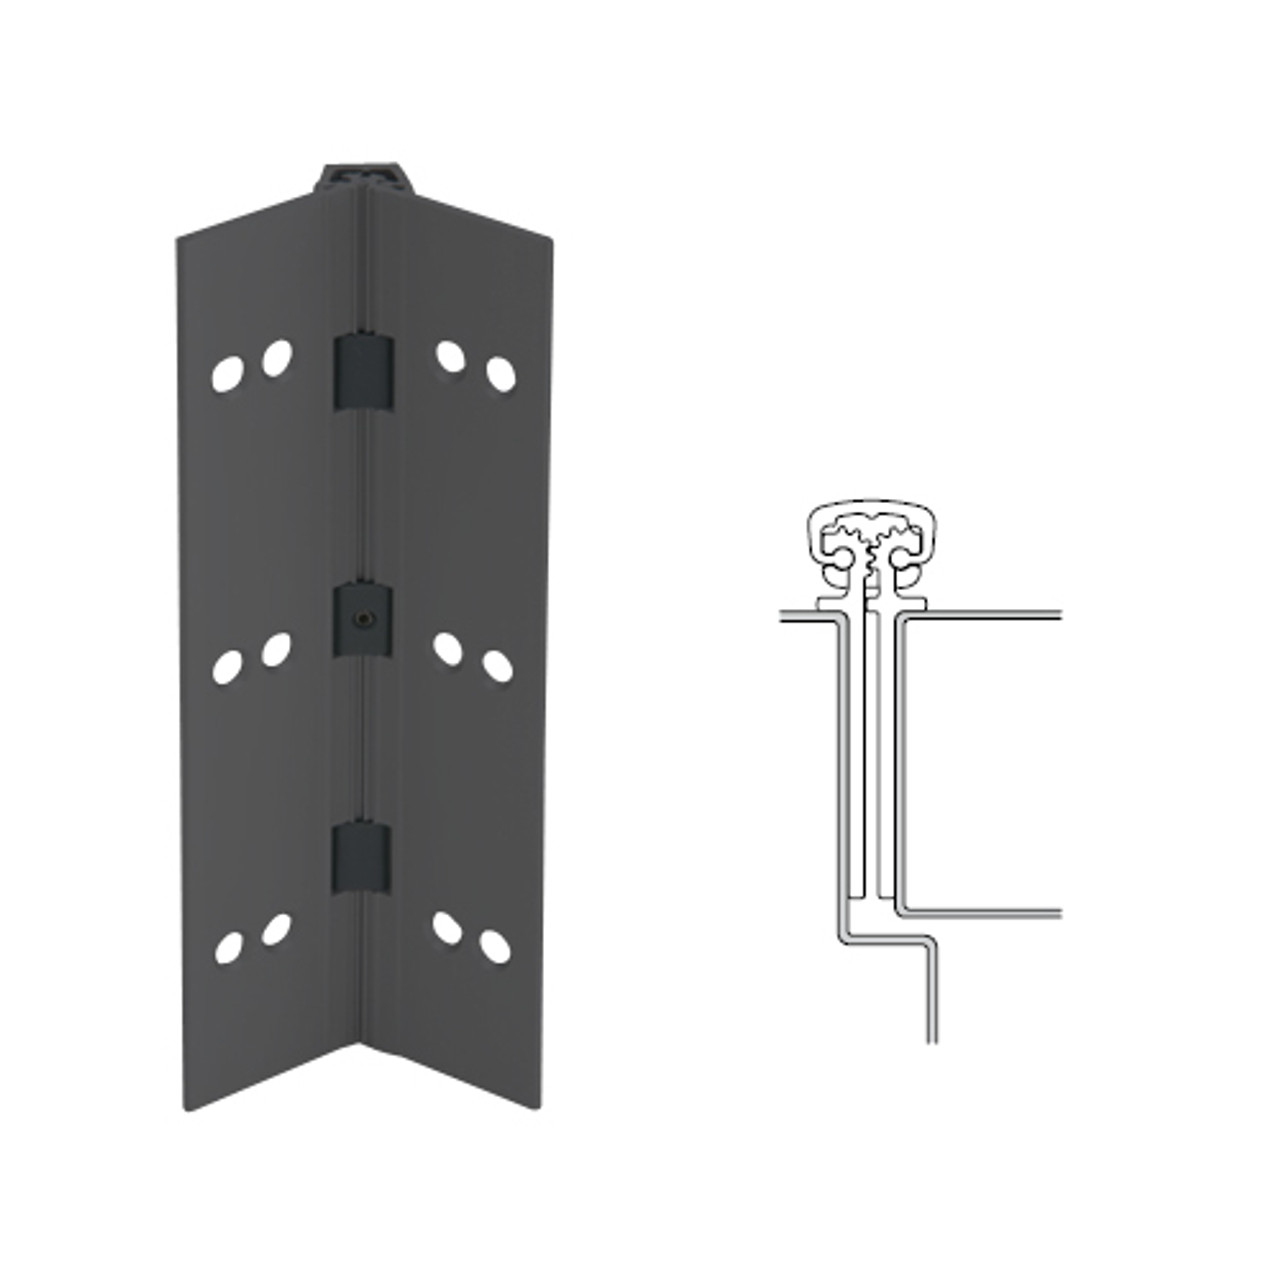 027XY-315AN-95-TEKWD IVES Full Mortise Continuous Geared Hinges with Wood Screws in Anodized Black